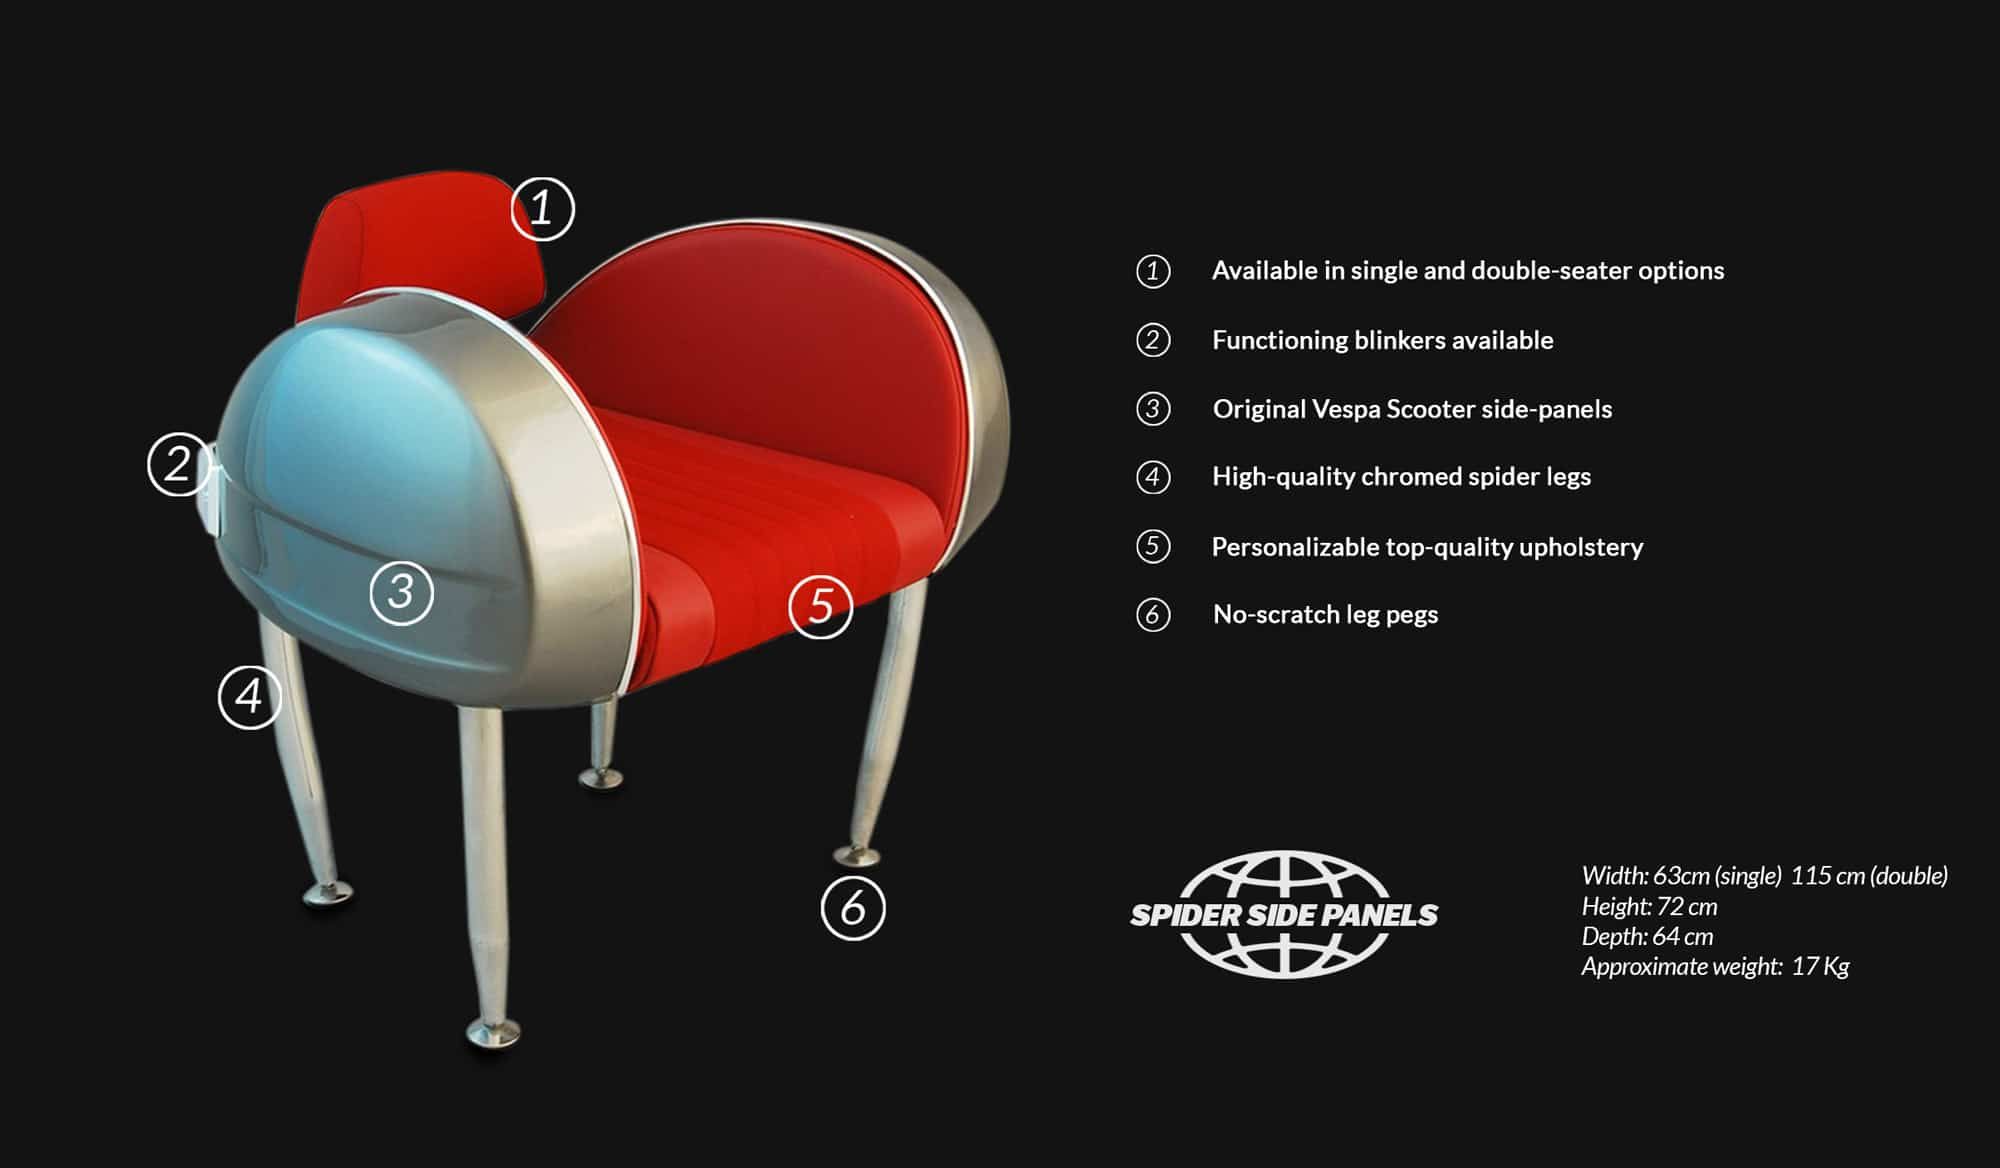 Spider Side Panels Technical Specifications